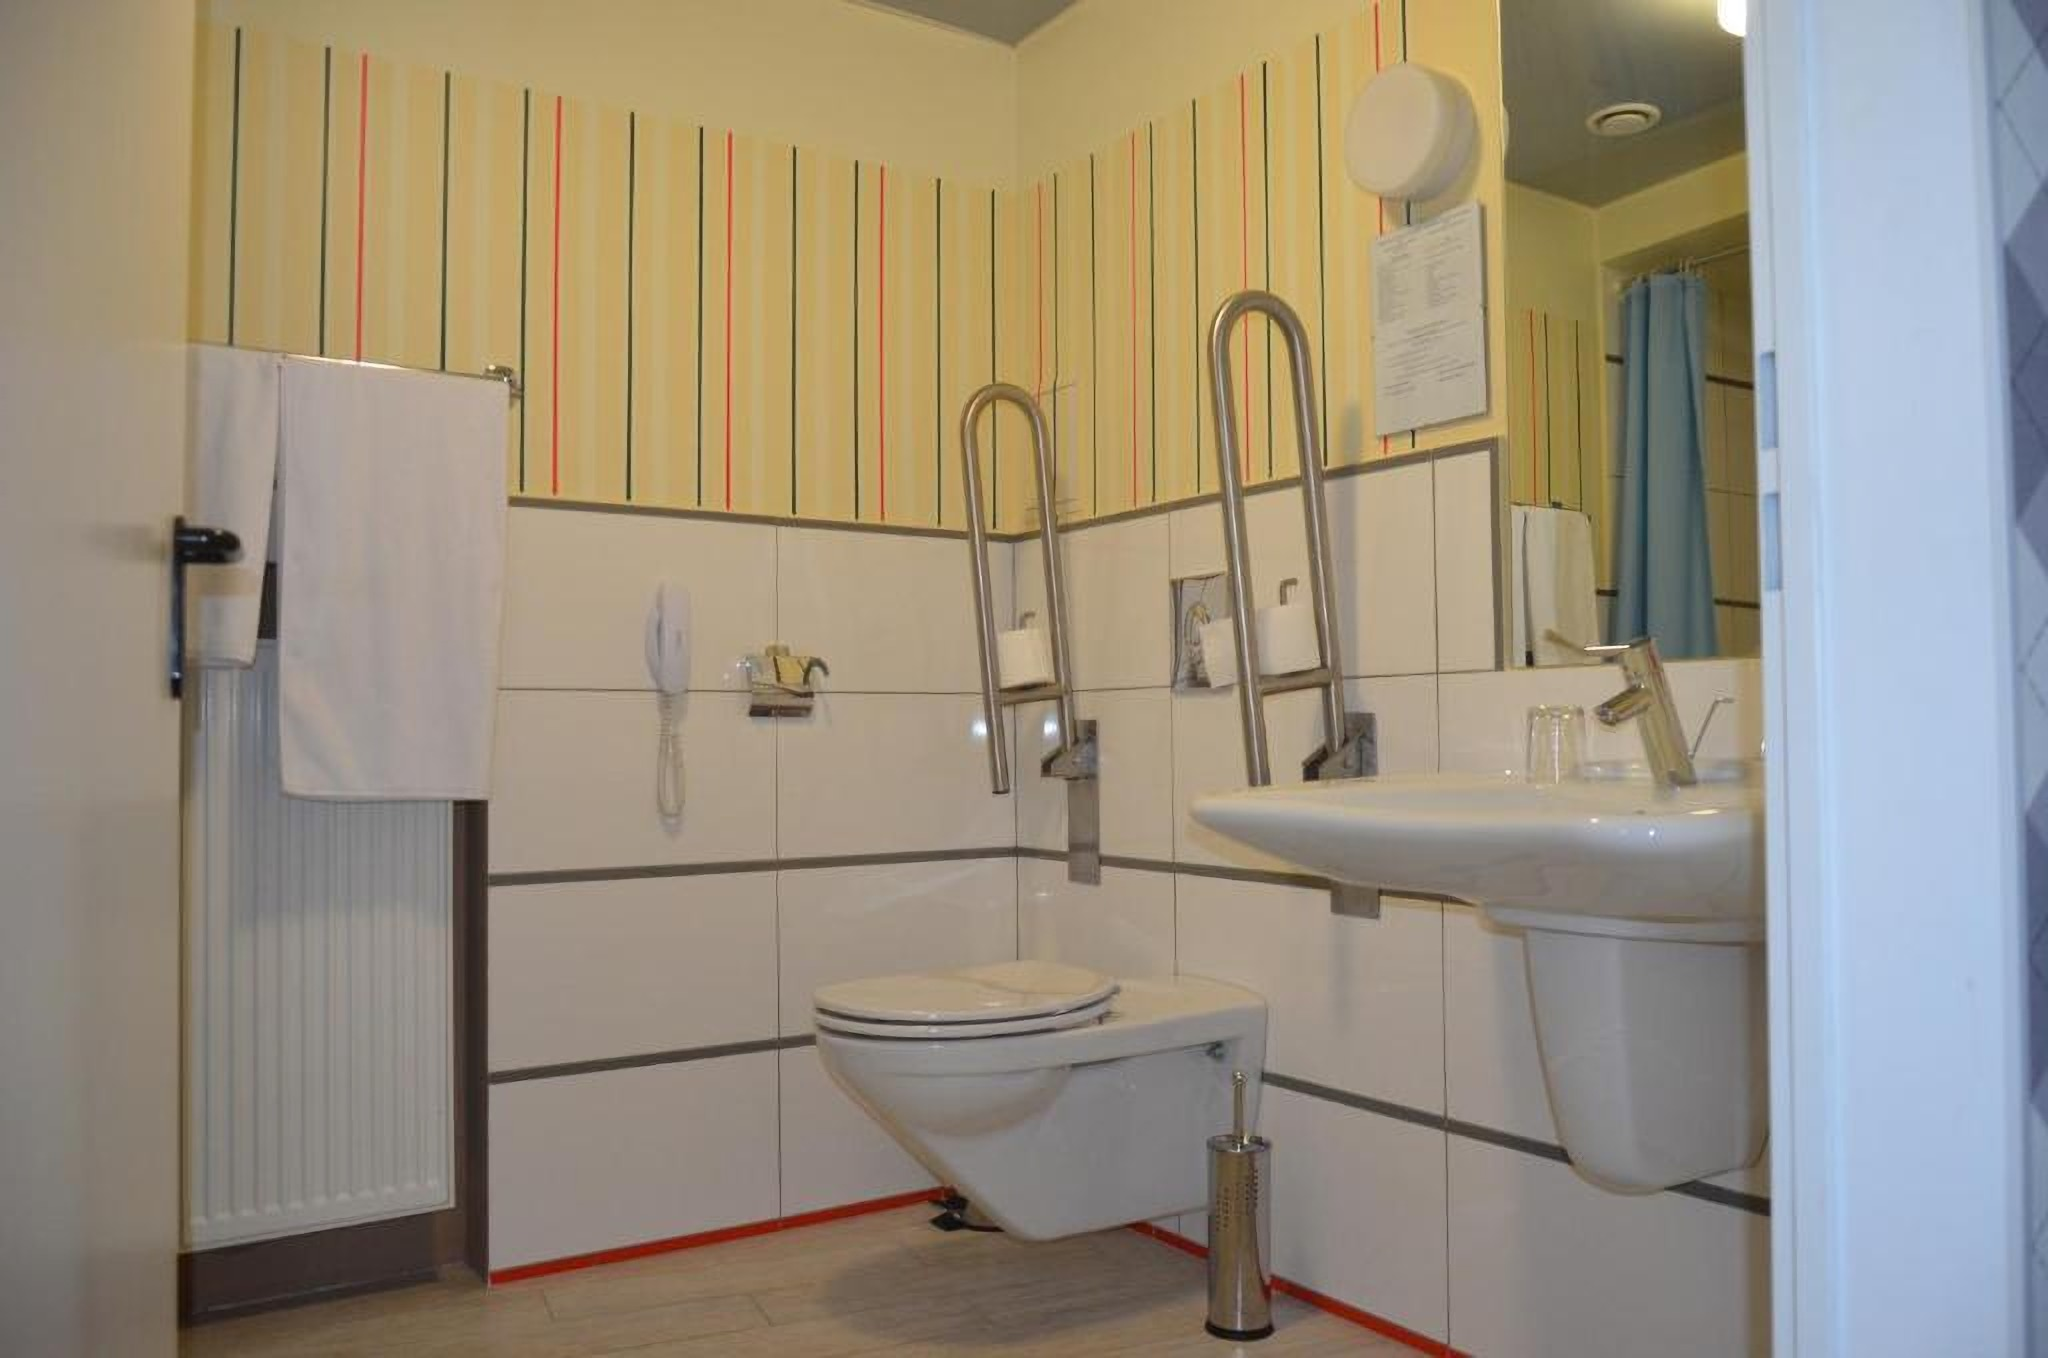 A Bathroom for people with disabilities